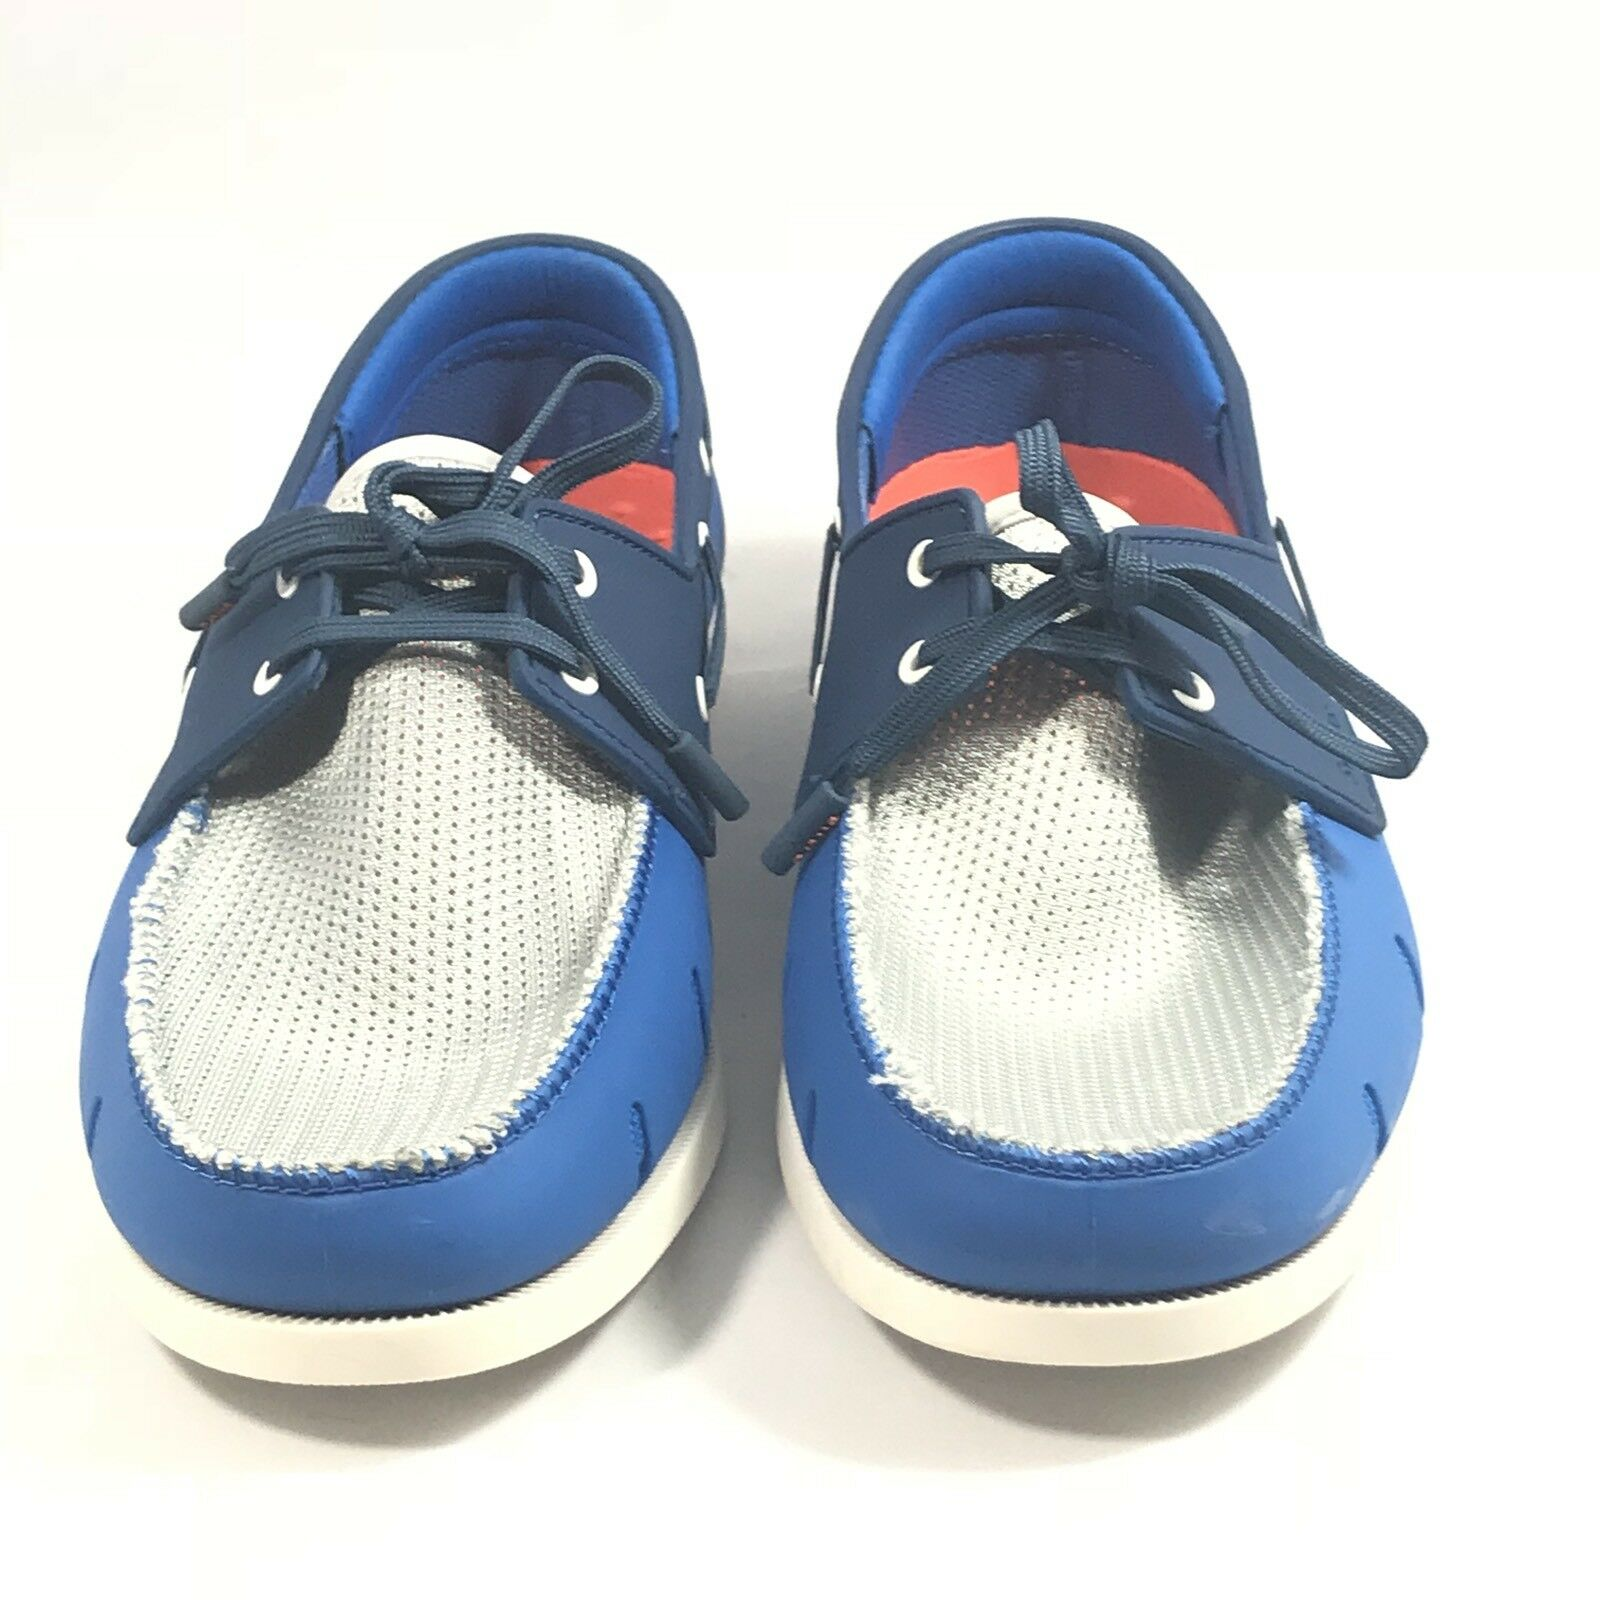 NEW  SWIMS Breeze Leap Classic Men Loafers Boat shoes bluee Grey US 9